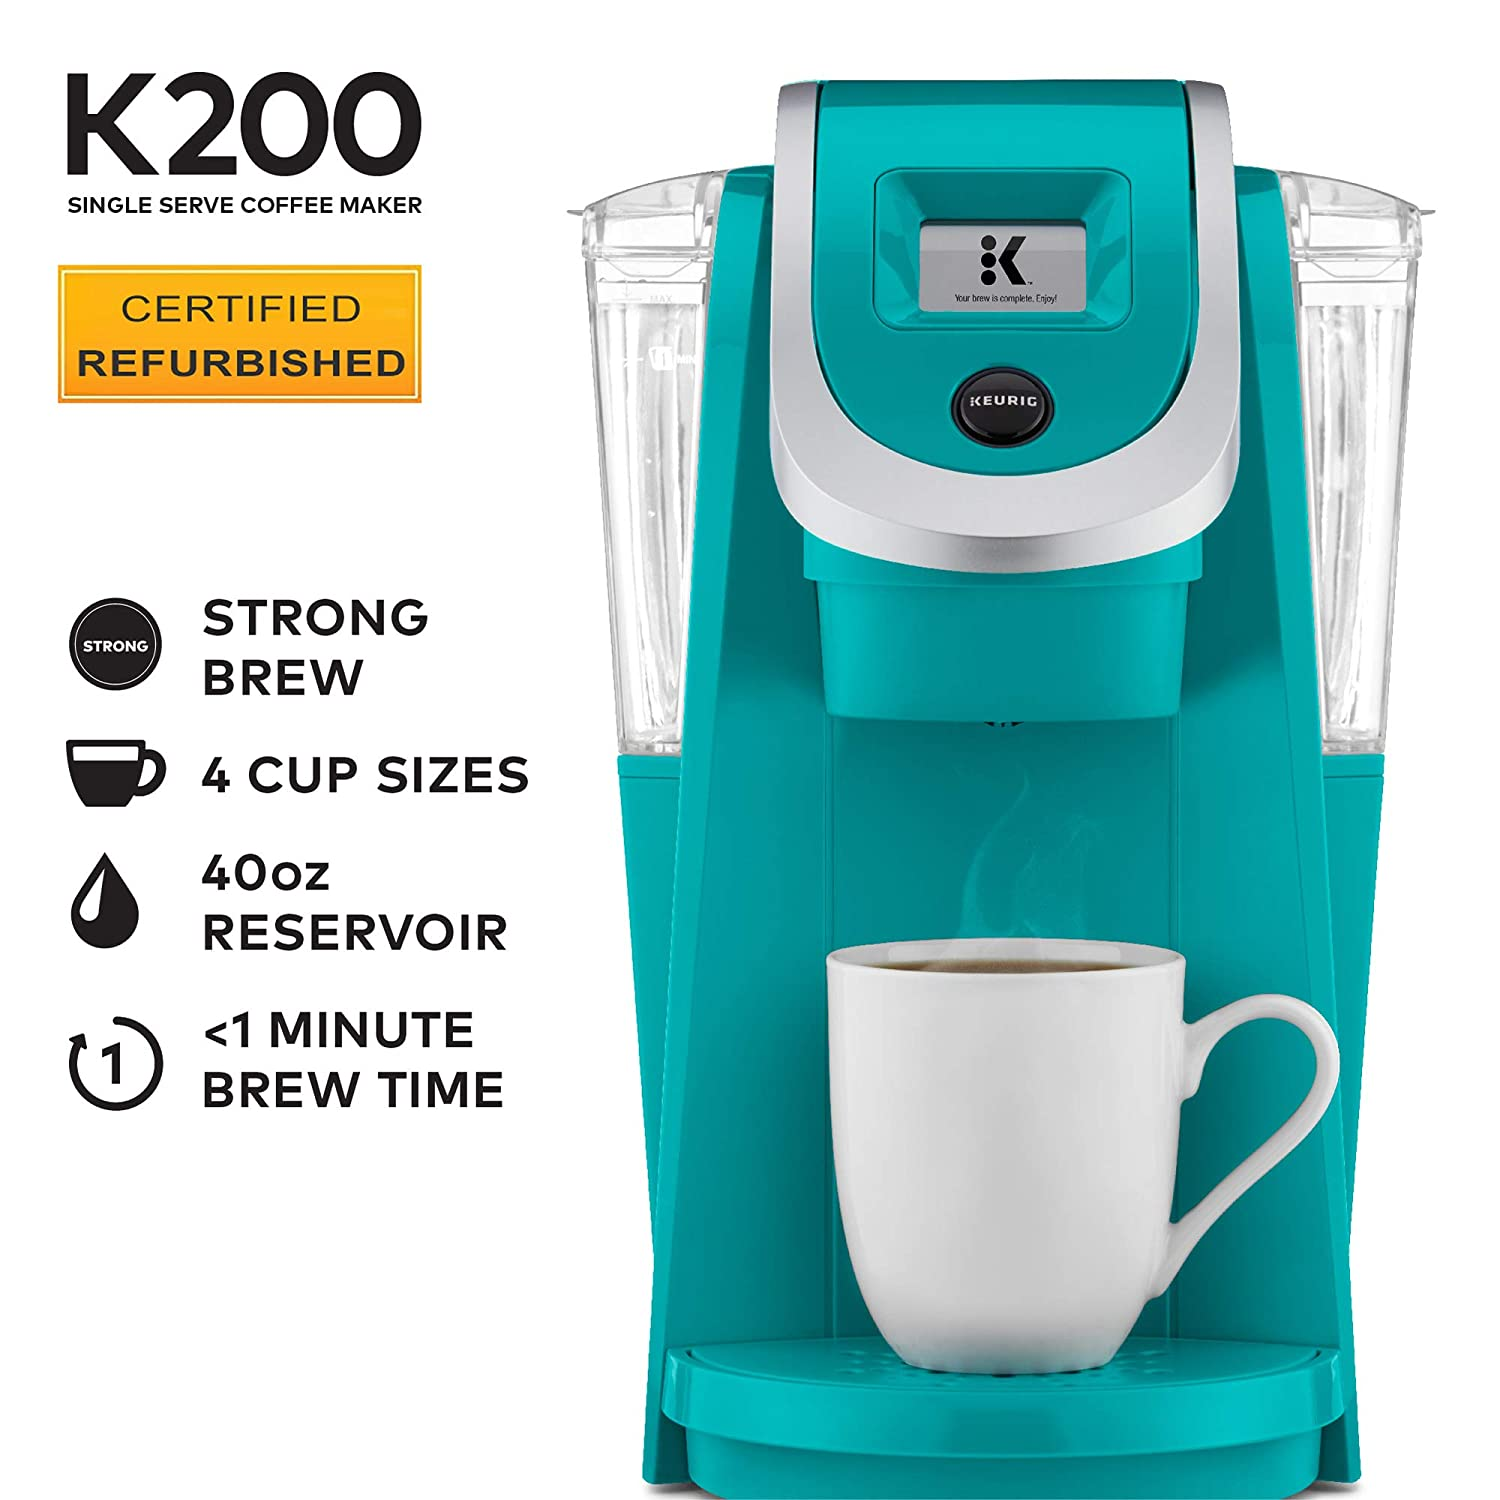 Keurig K200 Coffee Maker, Single Serve K-Cup Pod Coffee Brewer, With Strength Control, Tourquise Renewed